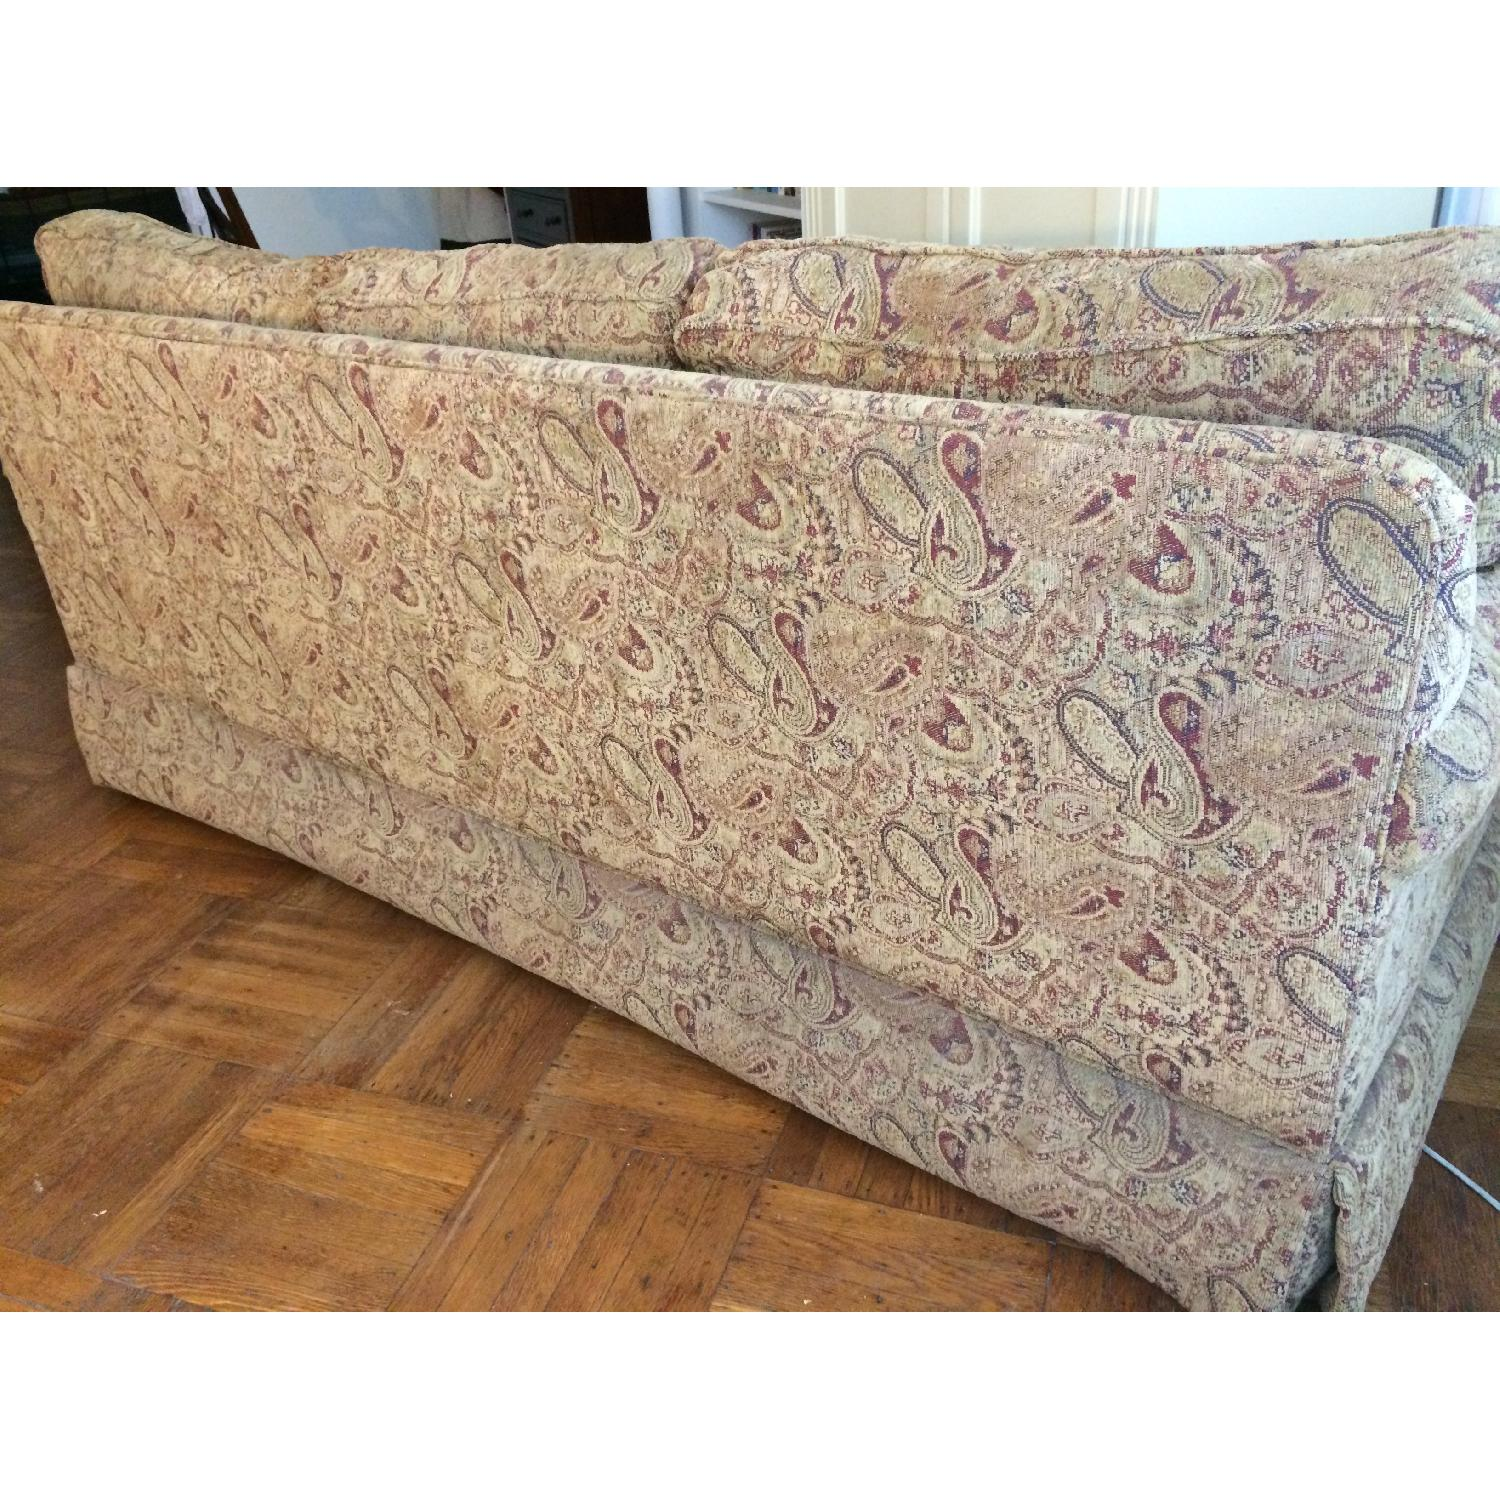 Ethan Allen Slipcovered Rolled Arm Sofa-3